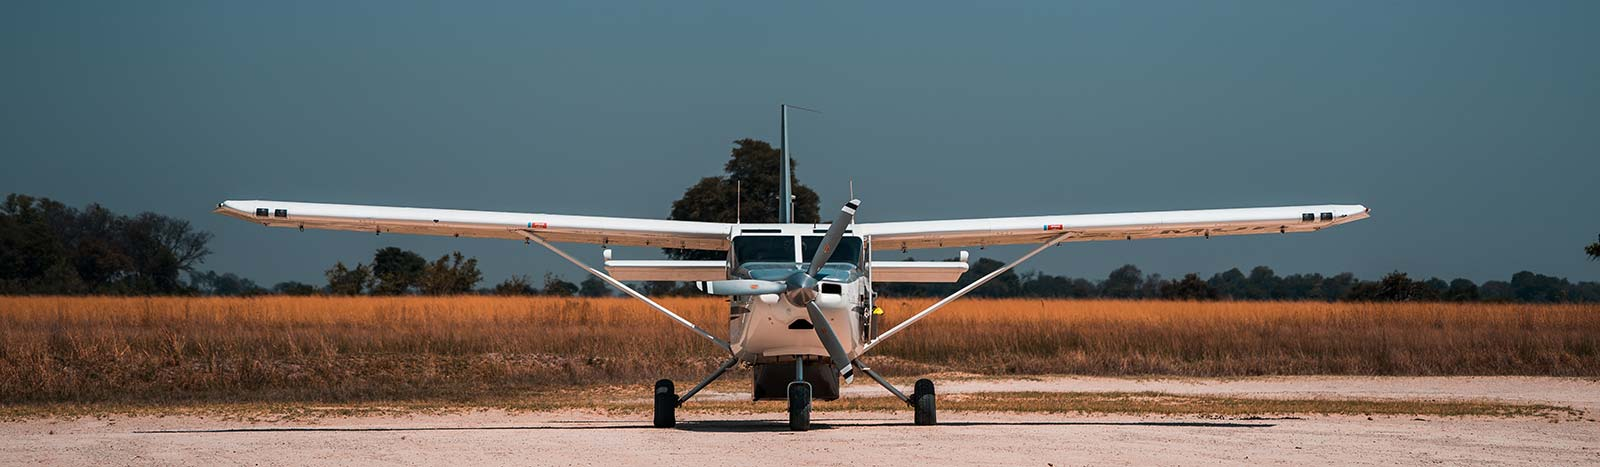 Small plane in Botswana, Africa. Cheetah, cubs & the most incredible dinner setting